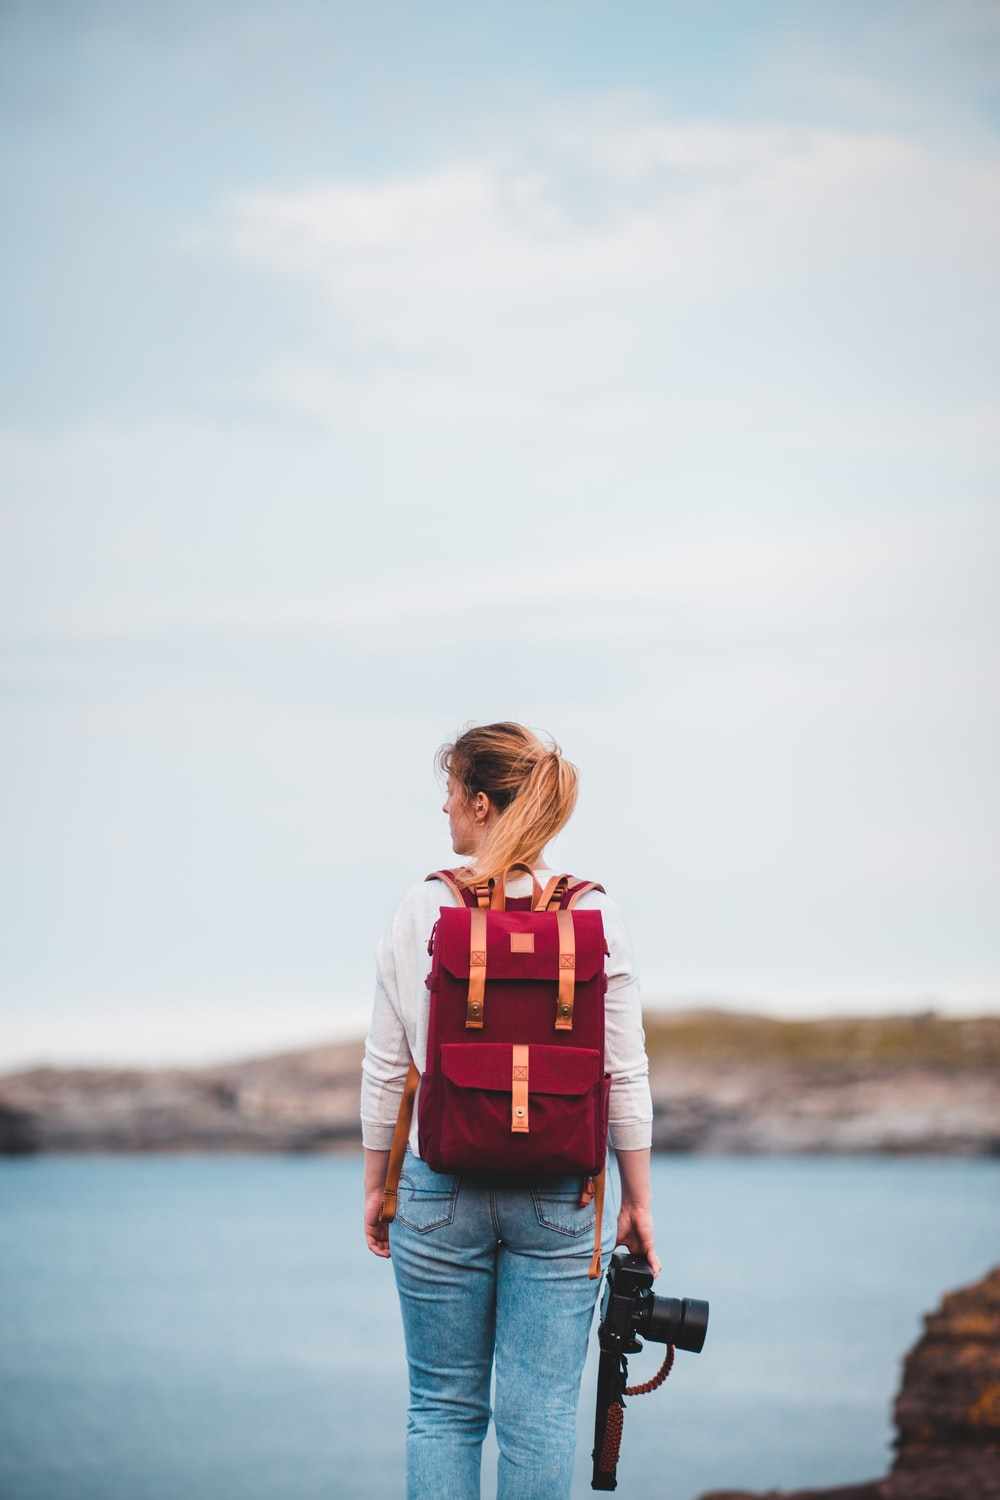 woman in white shirt and orange backpack standing near body of water during daytime